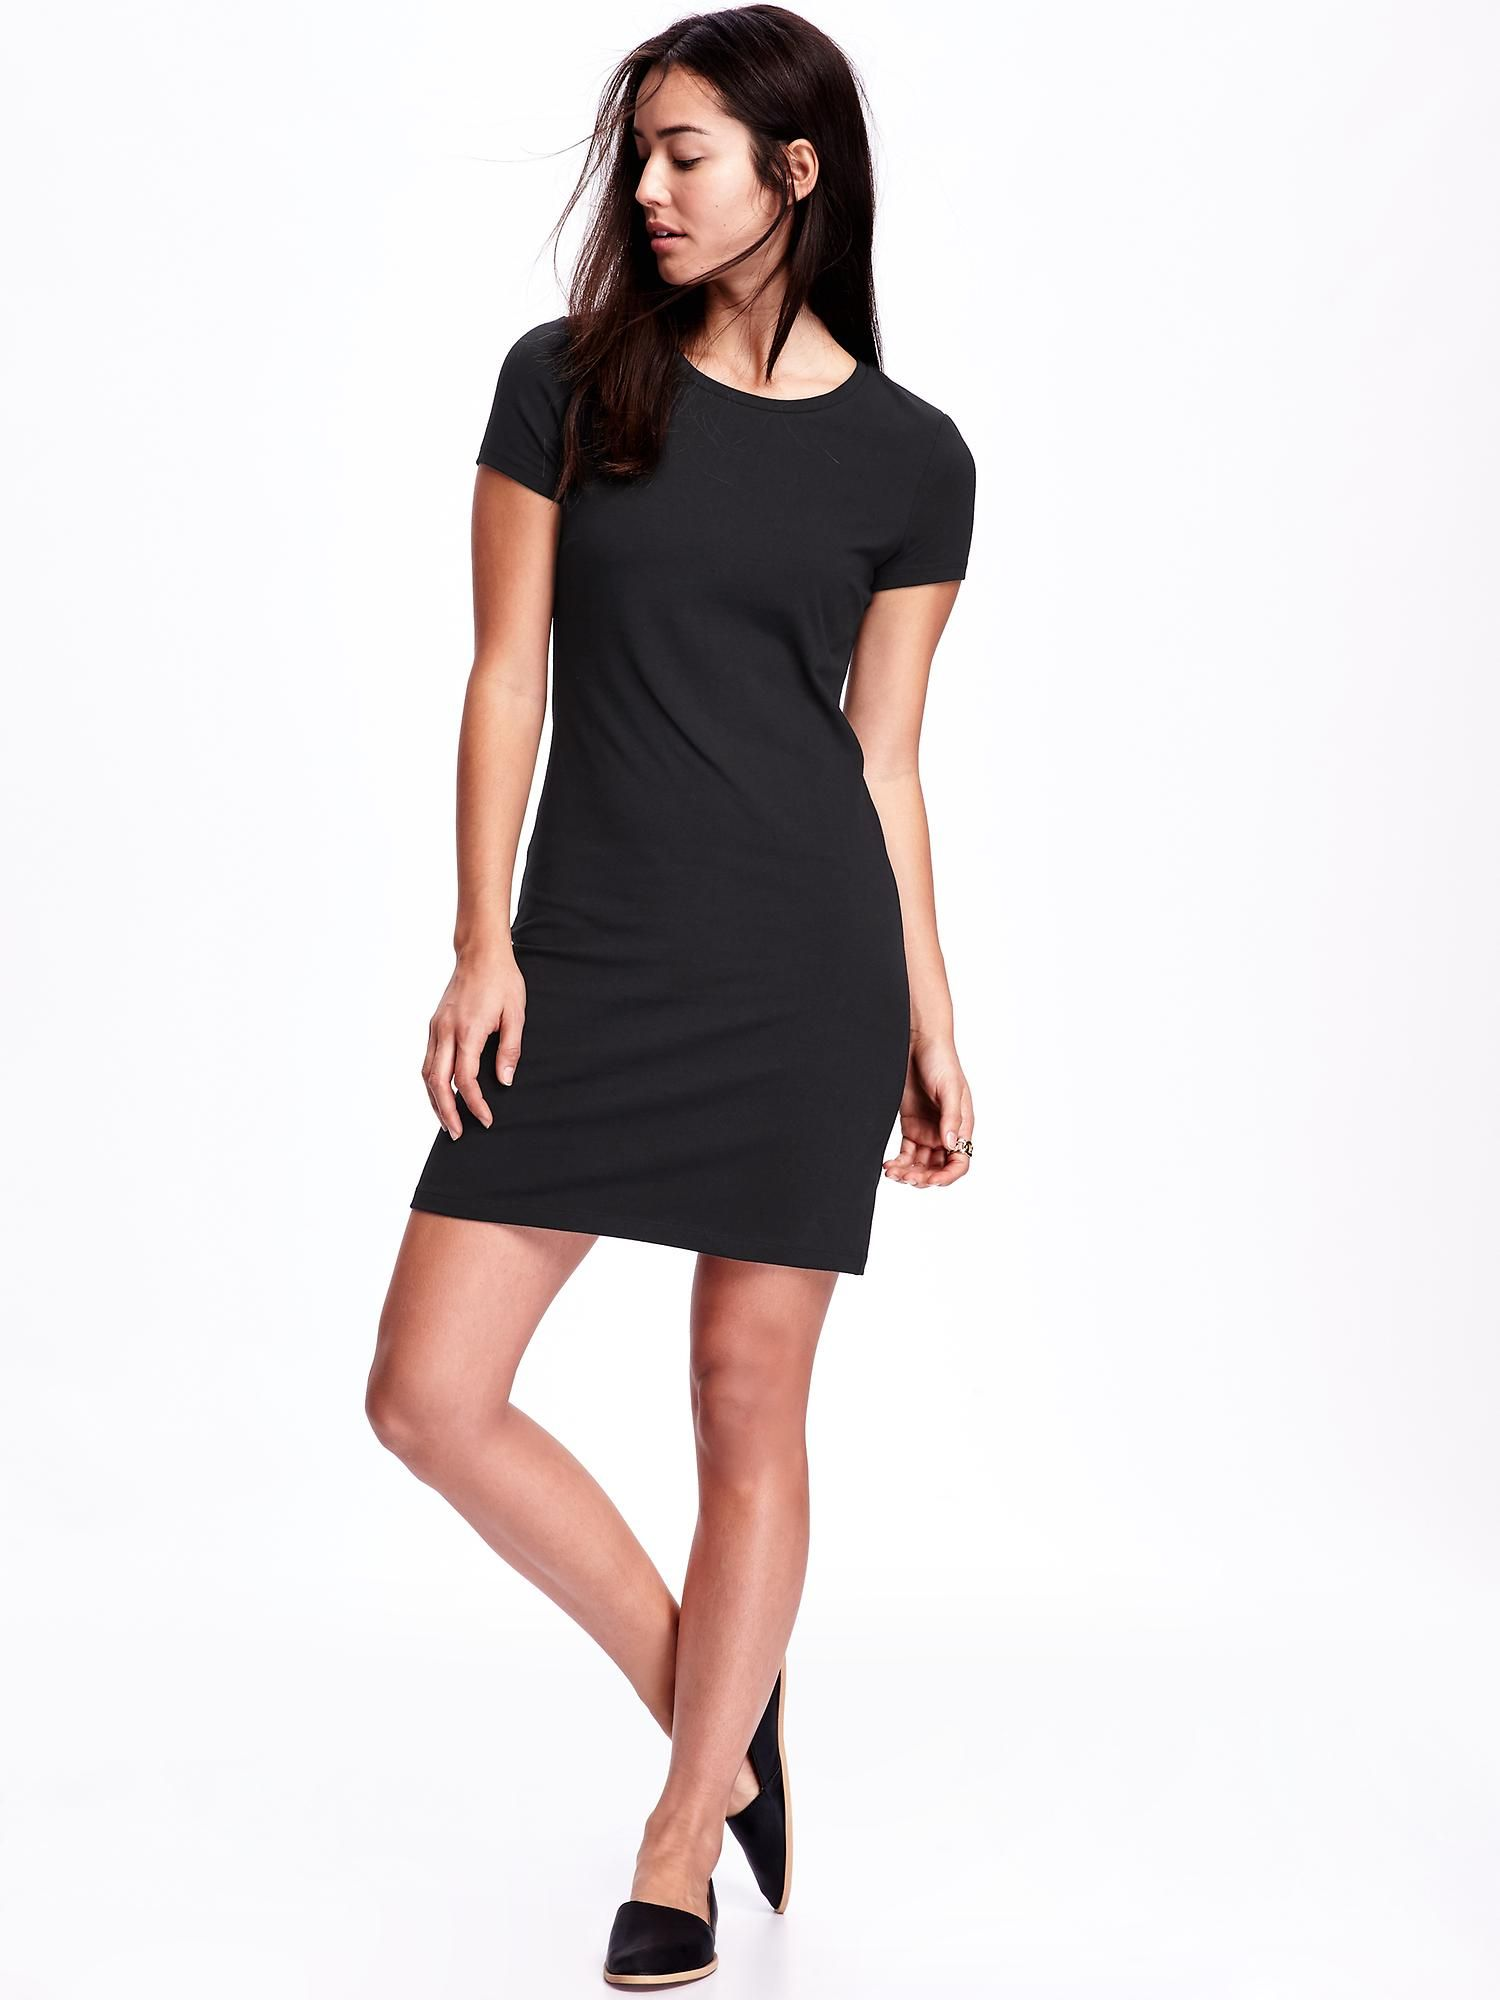 7d3c7fe3e351 Fitted Tee Dress for Women